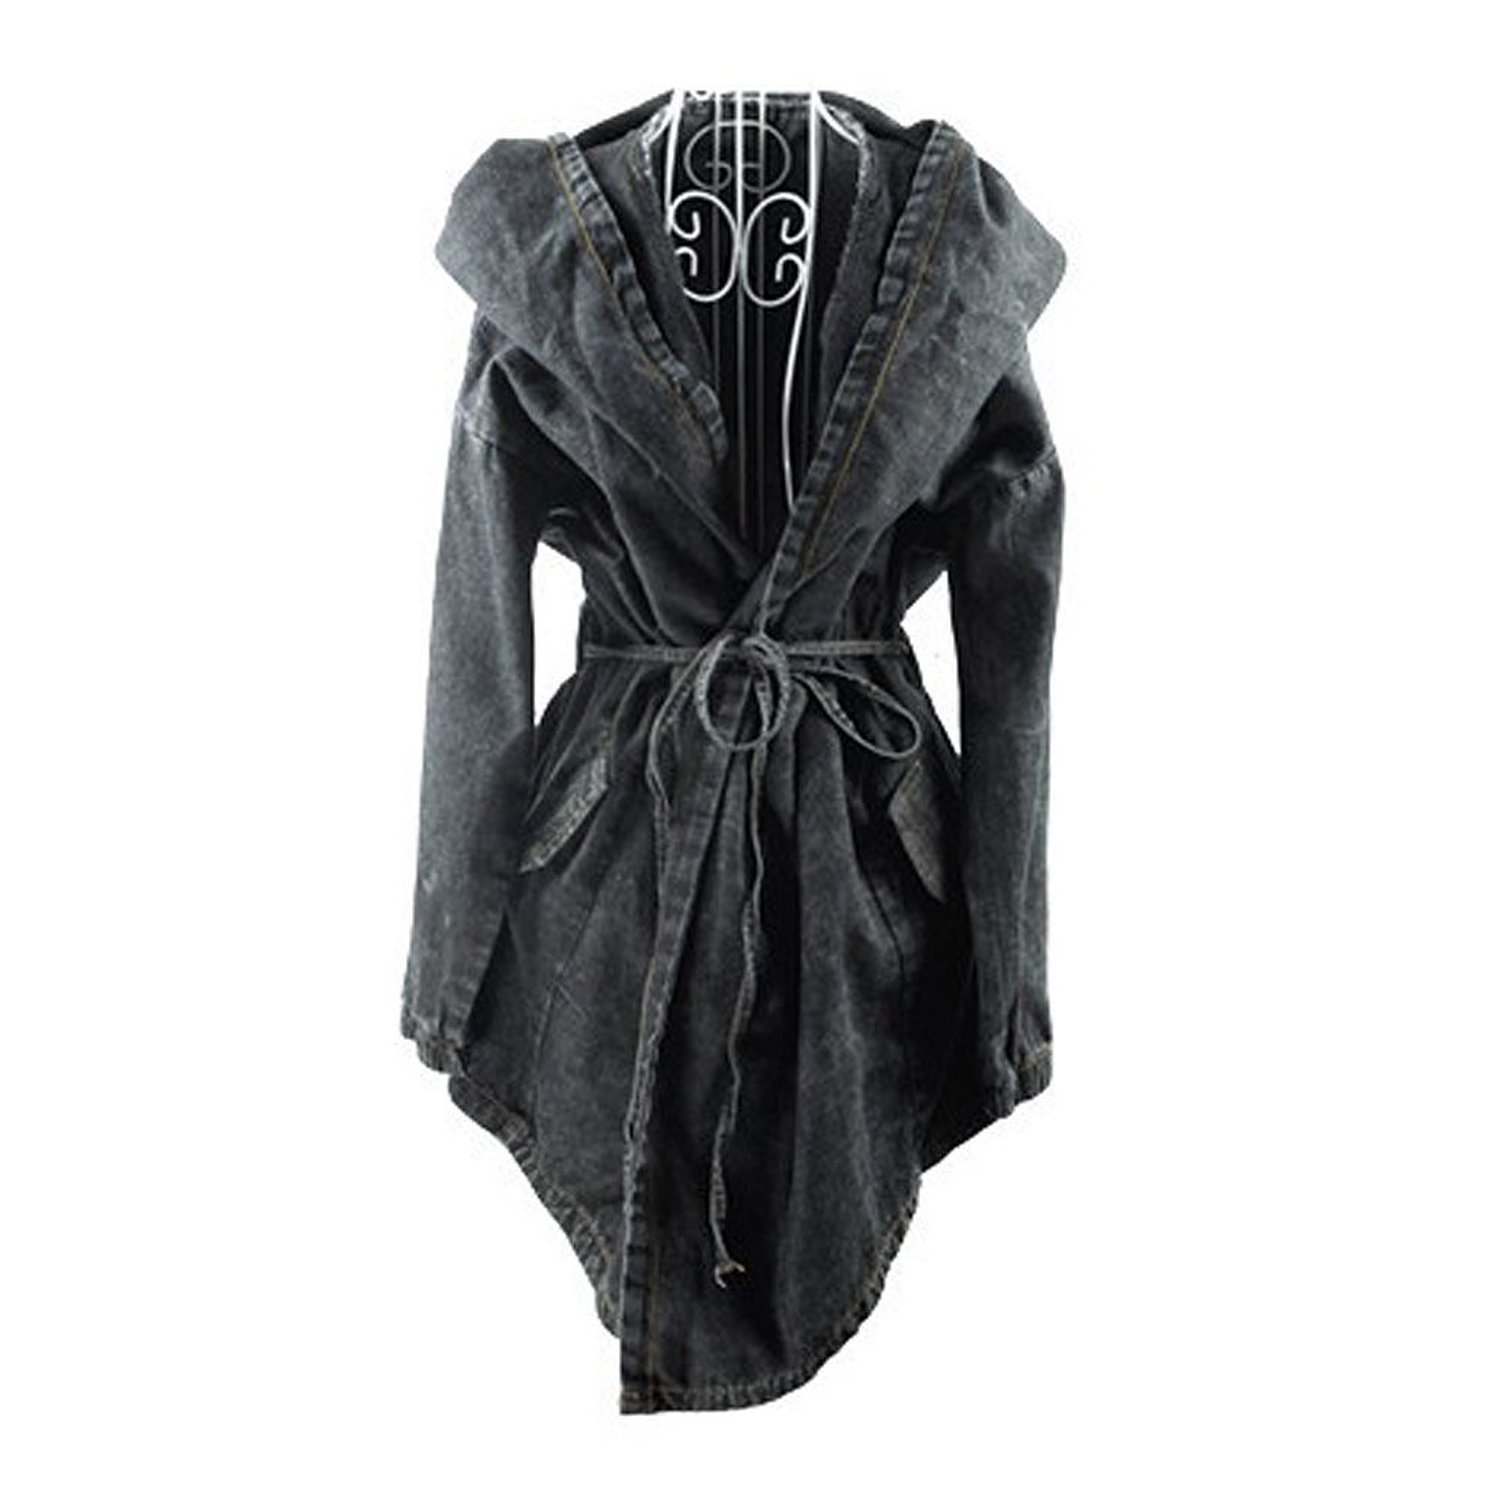 Xfome Style Women's Denim Trench Coat Hoodie Hooded Outerwear Jean Jacket at Amazon Women's Clothing store: